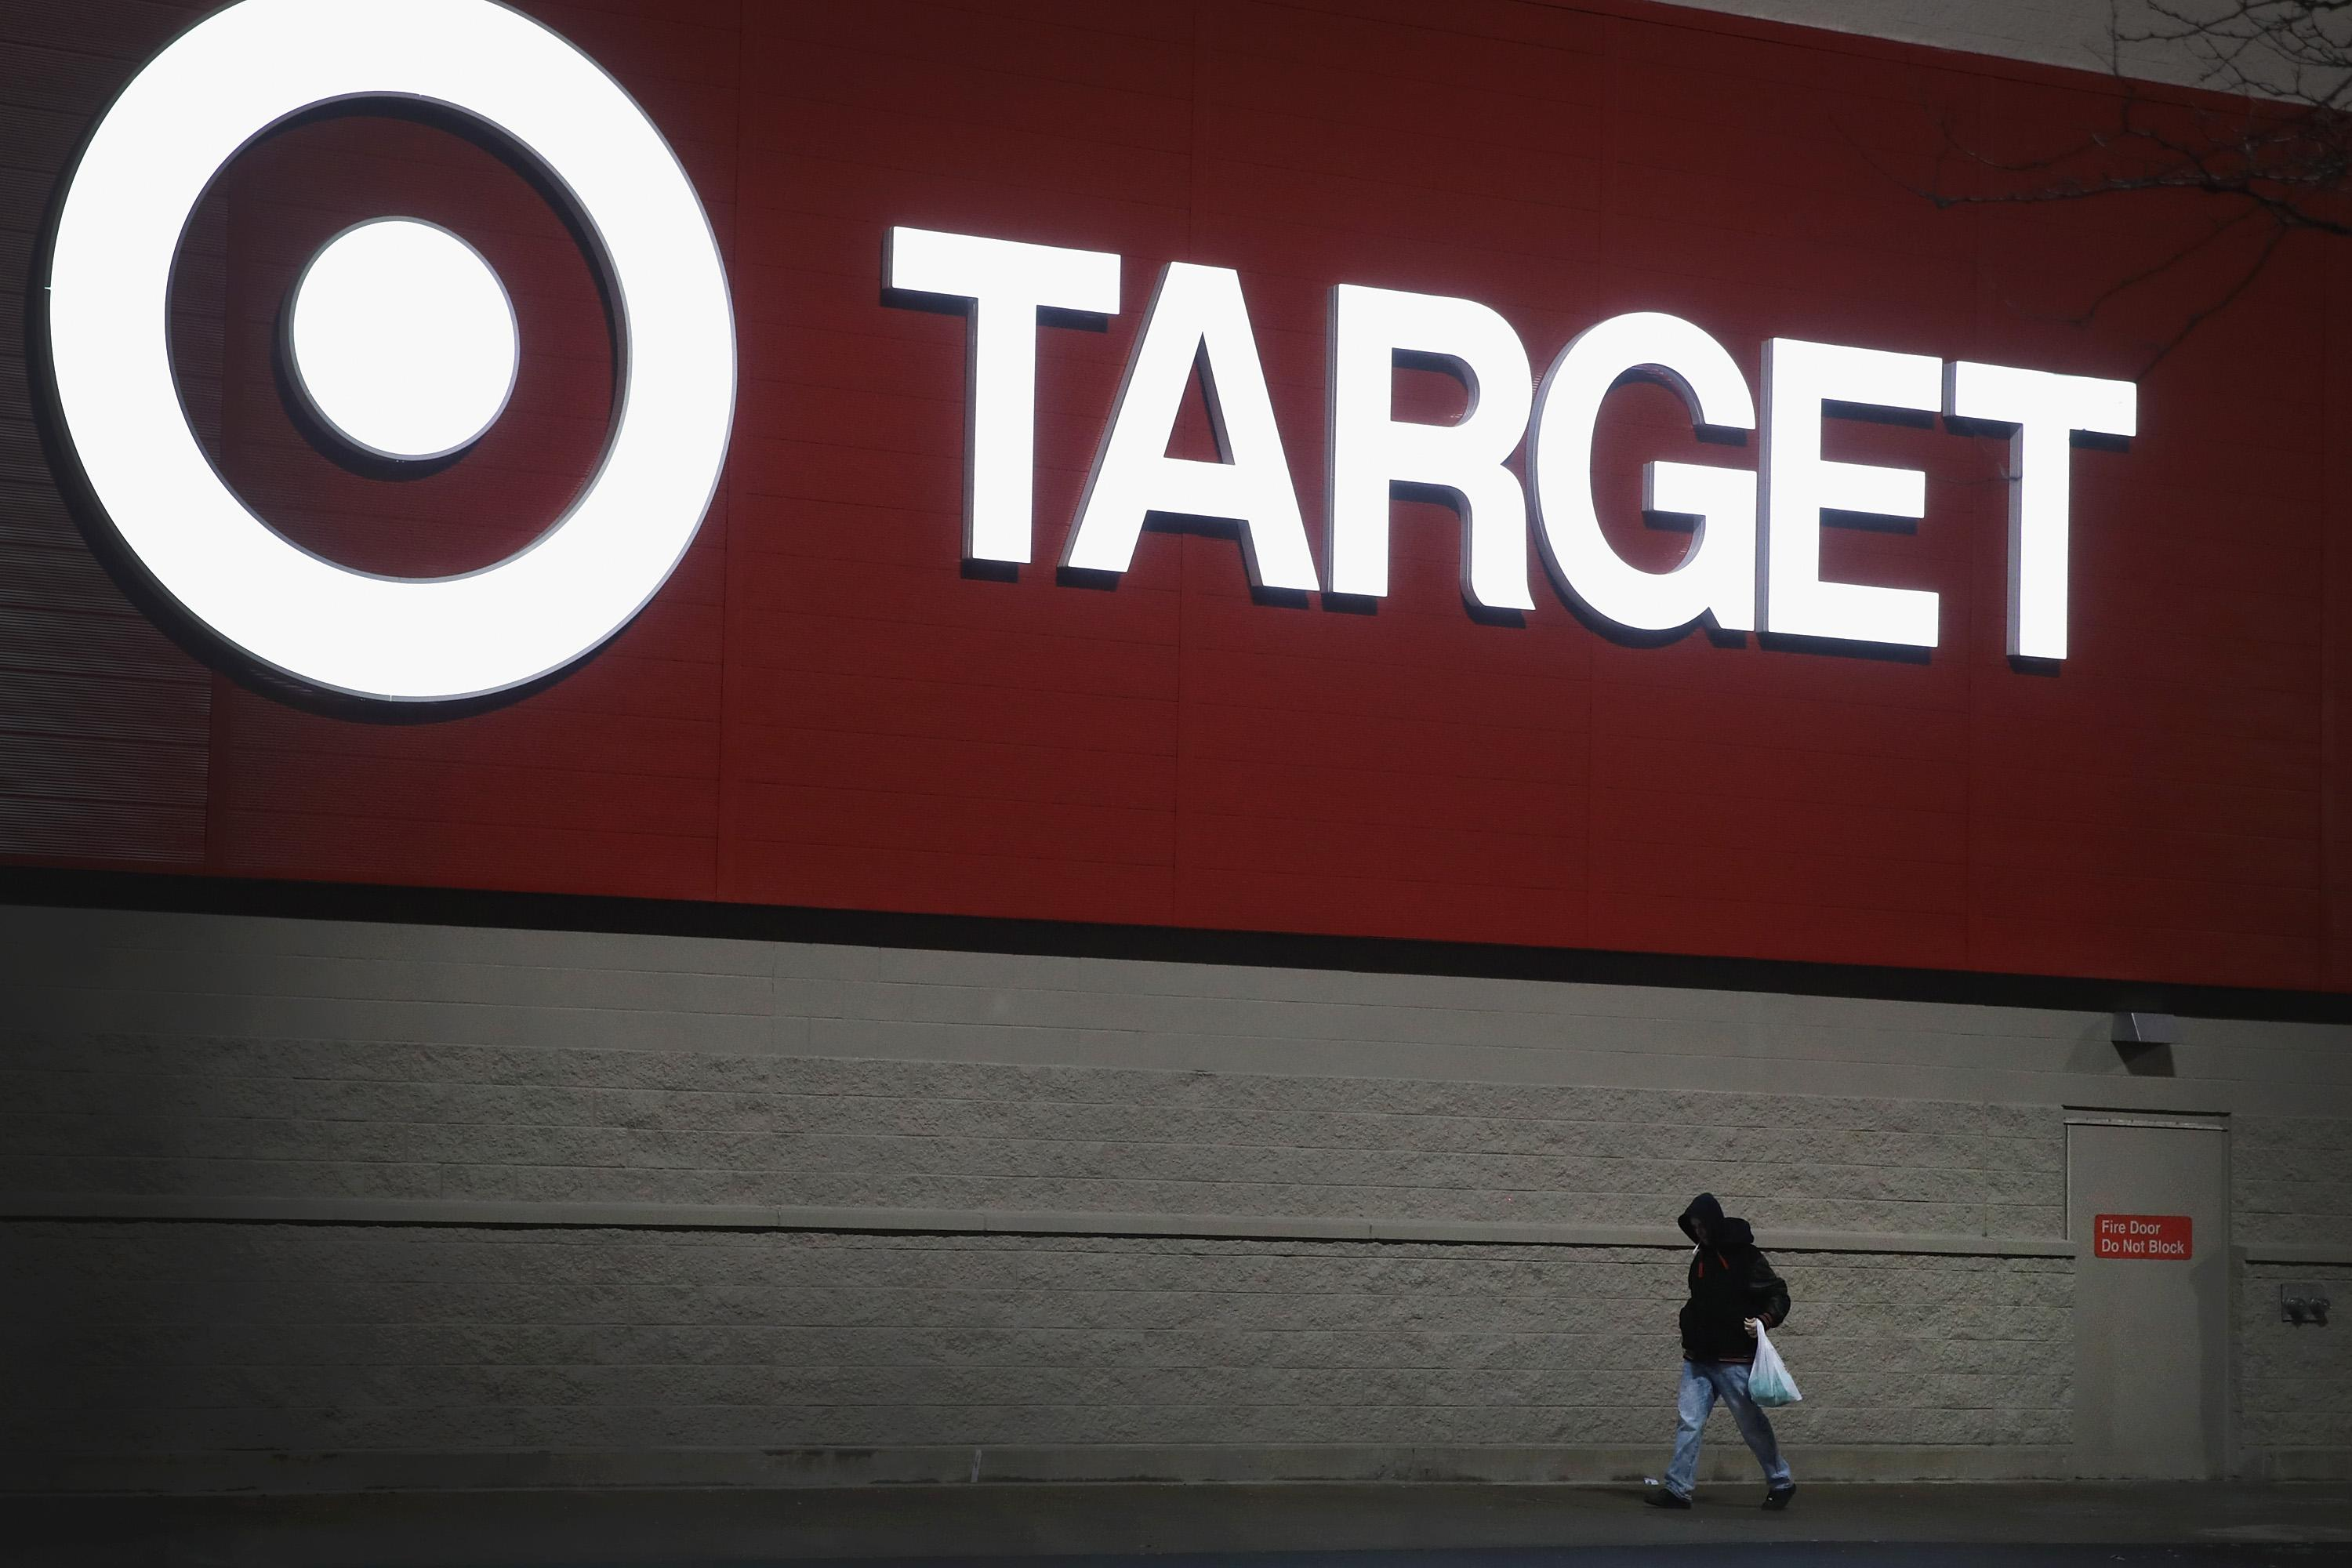 Serial Shoplifter Attacks Target Employee With Hammer After